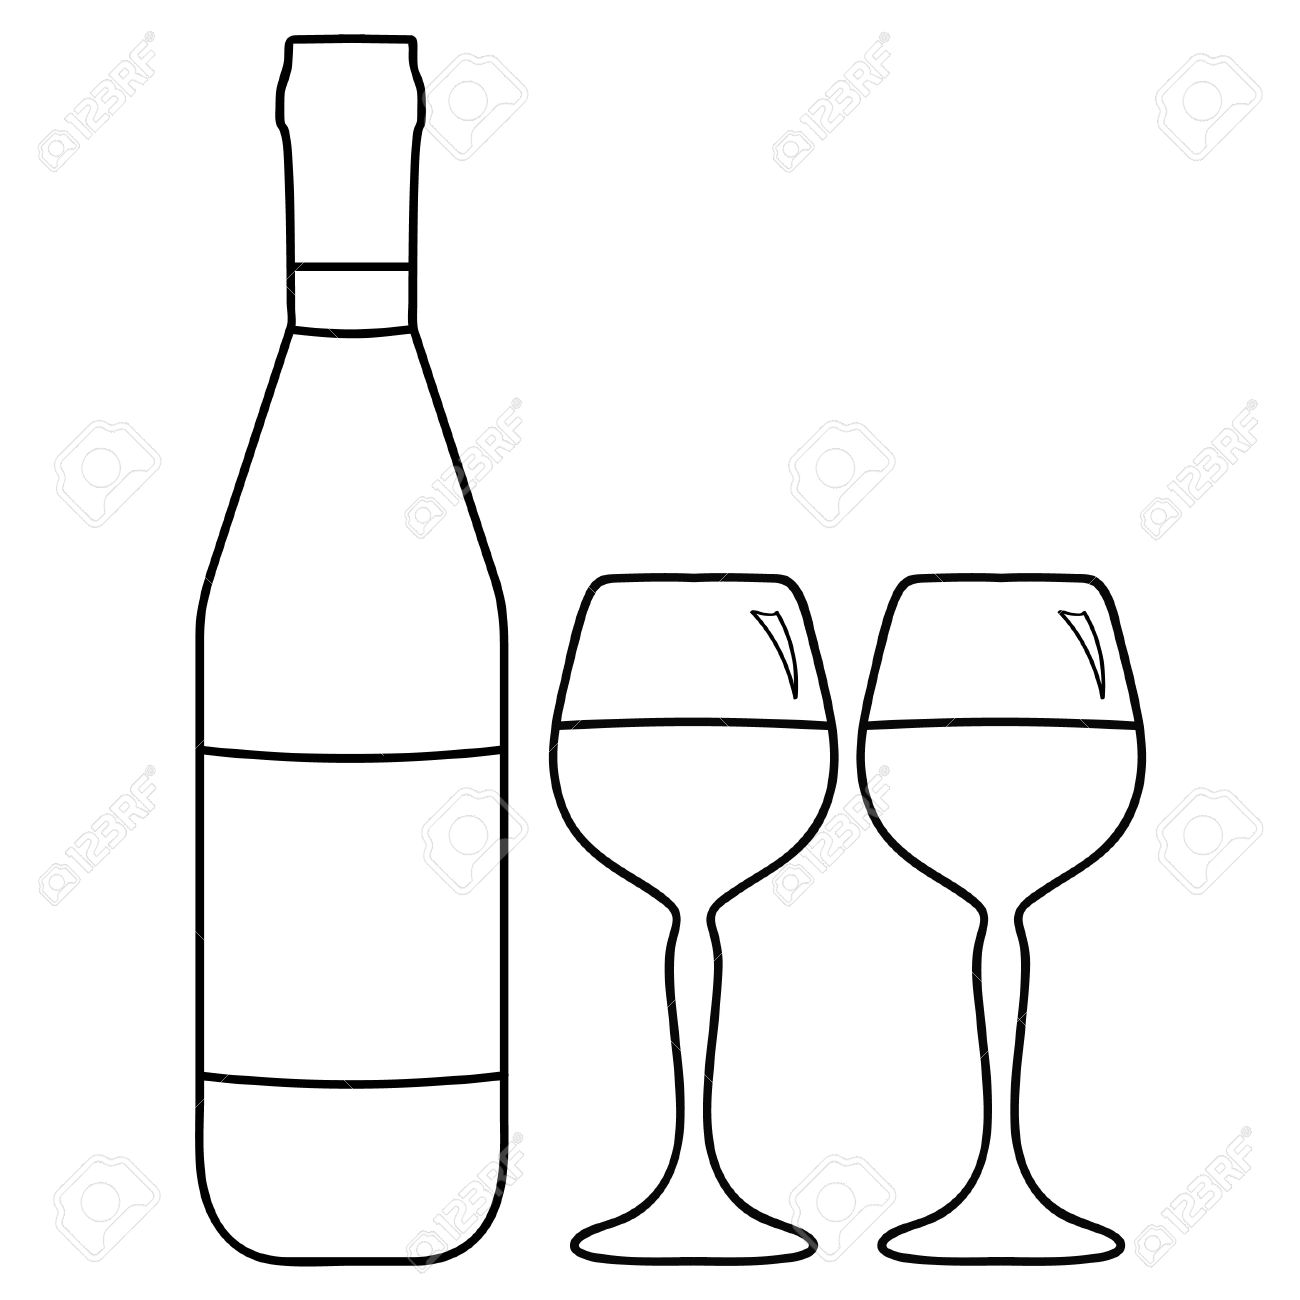 1300x1300 Vector Illustration Of Wine Bottle And Two Glasses With Wine